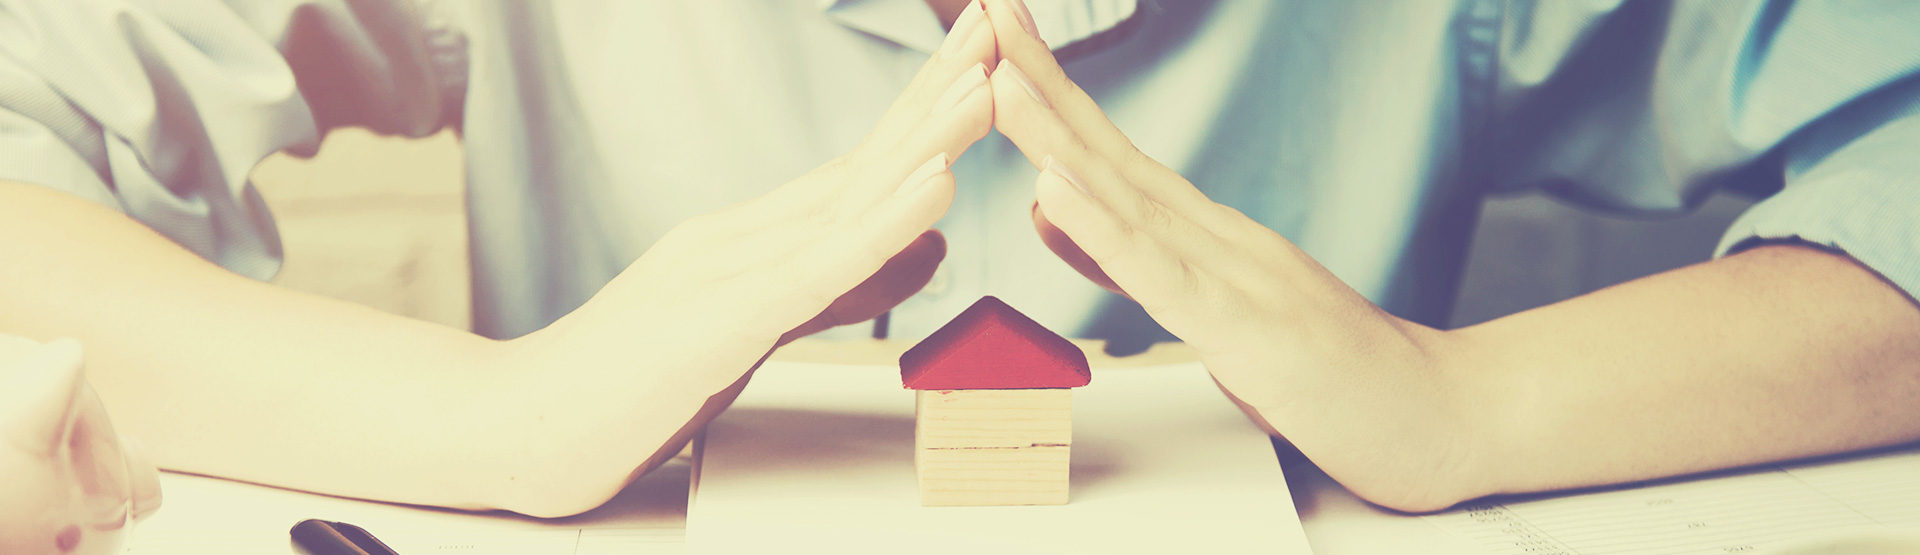 Hands over a tiny block house